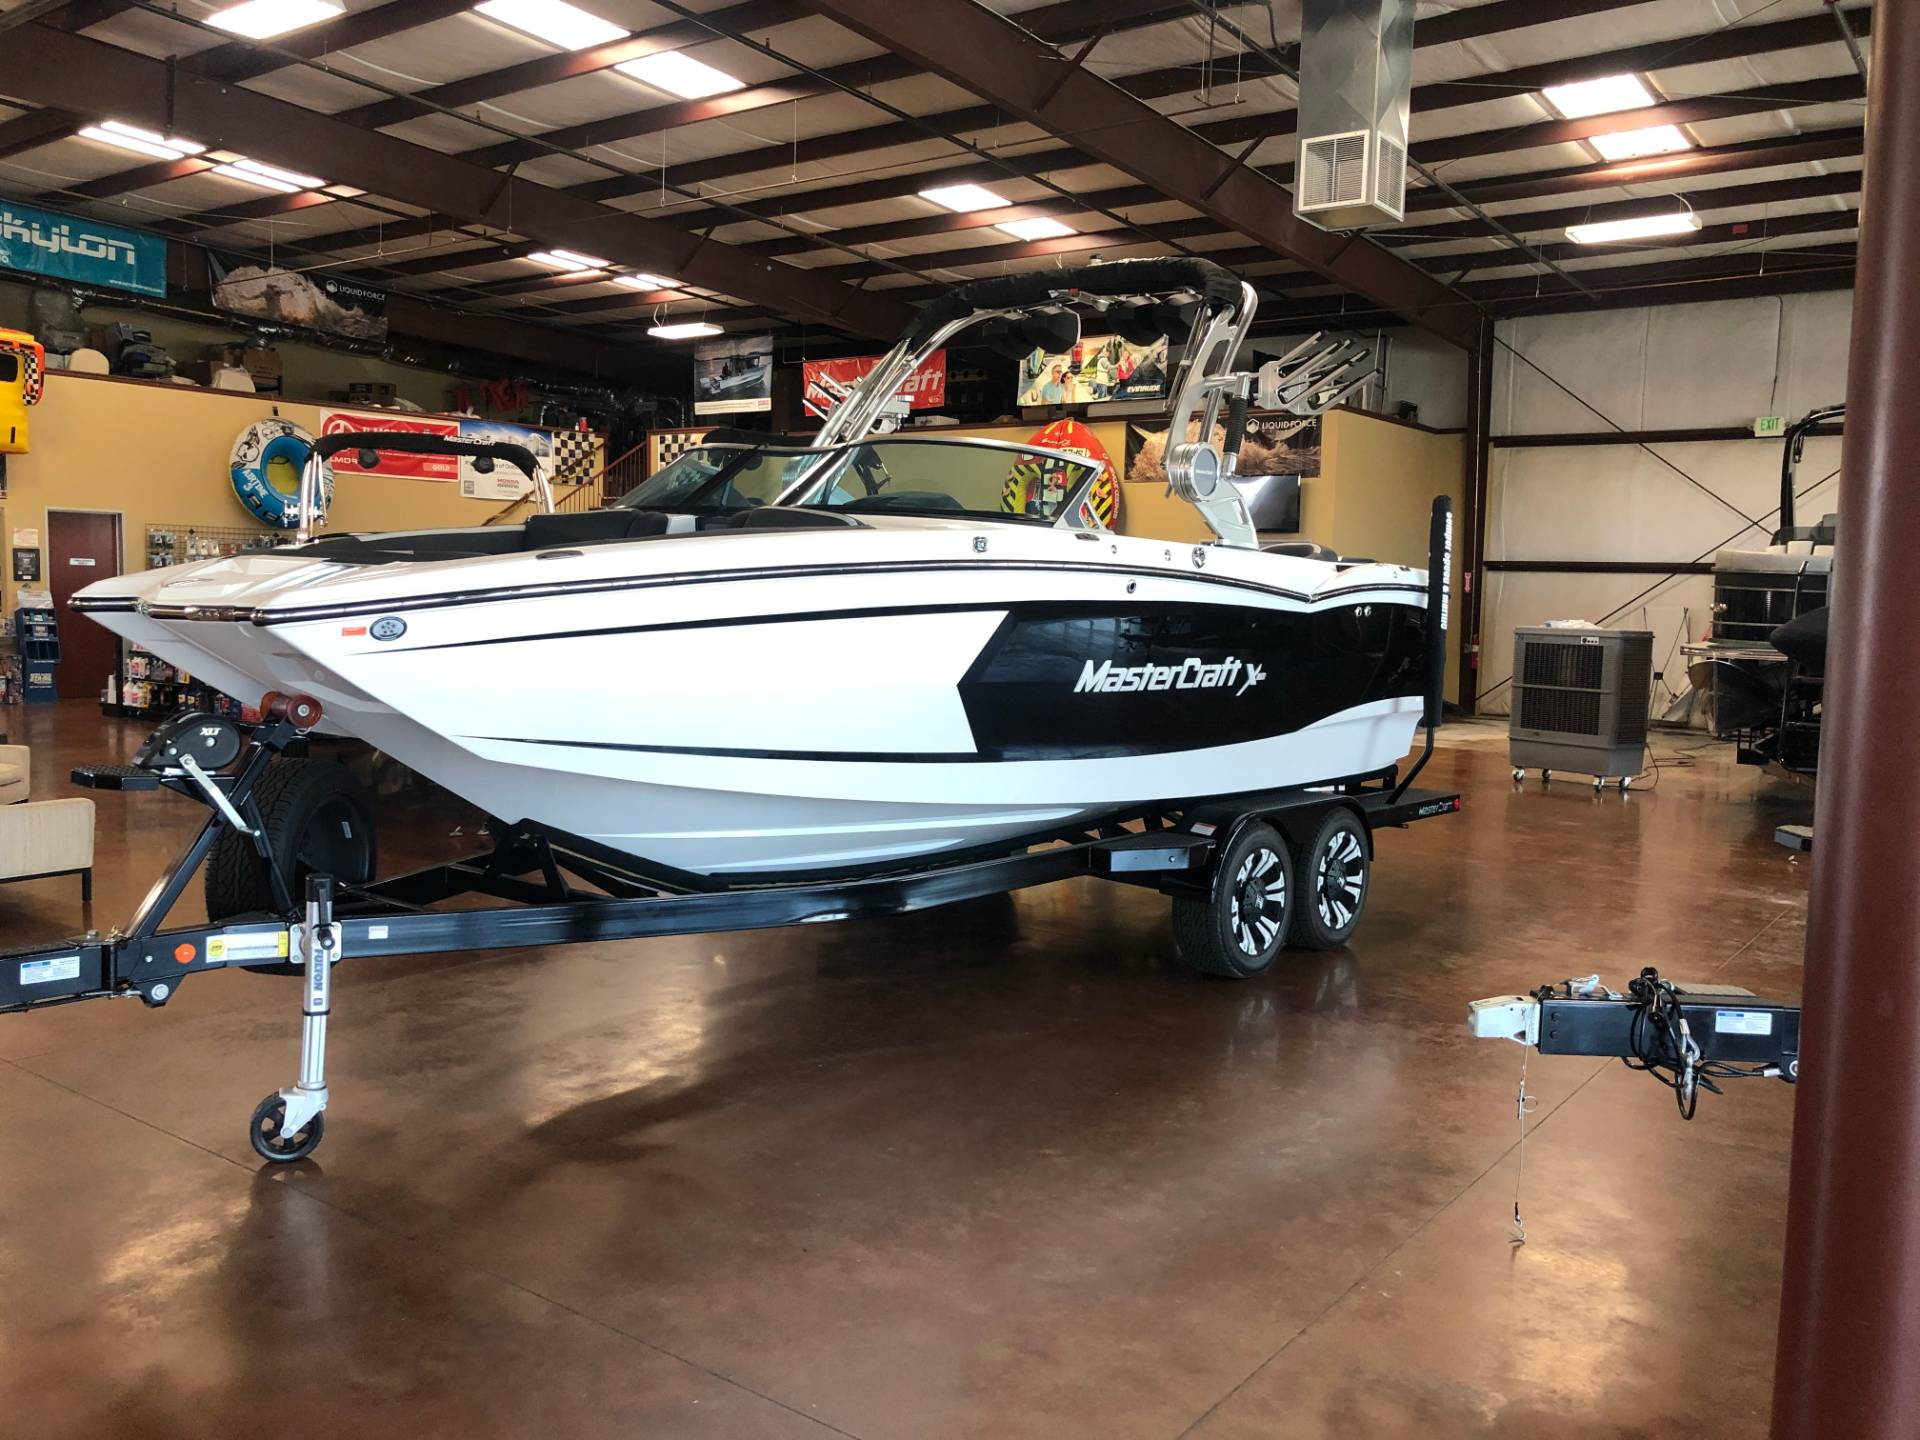 2020 Mastercraft XSTAR in Madera, California - Photo 2